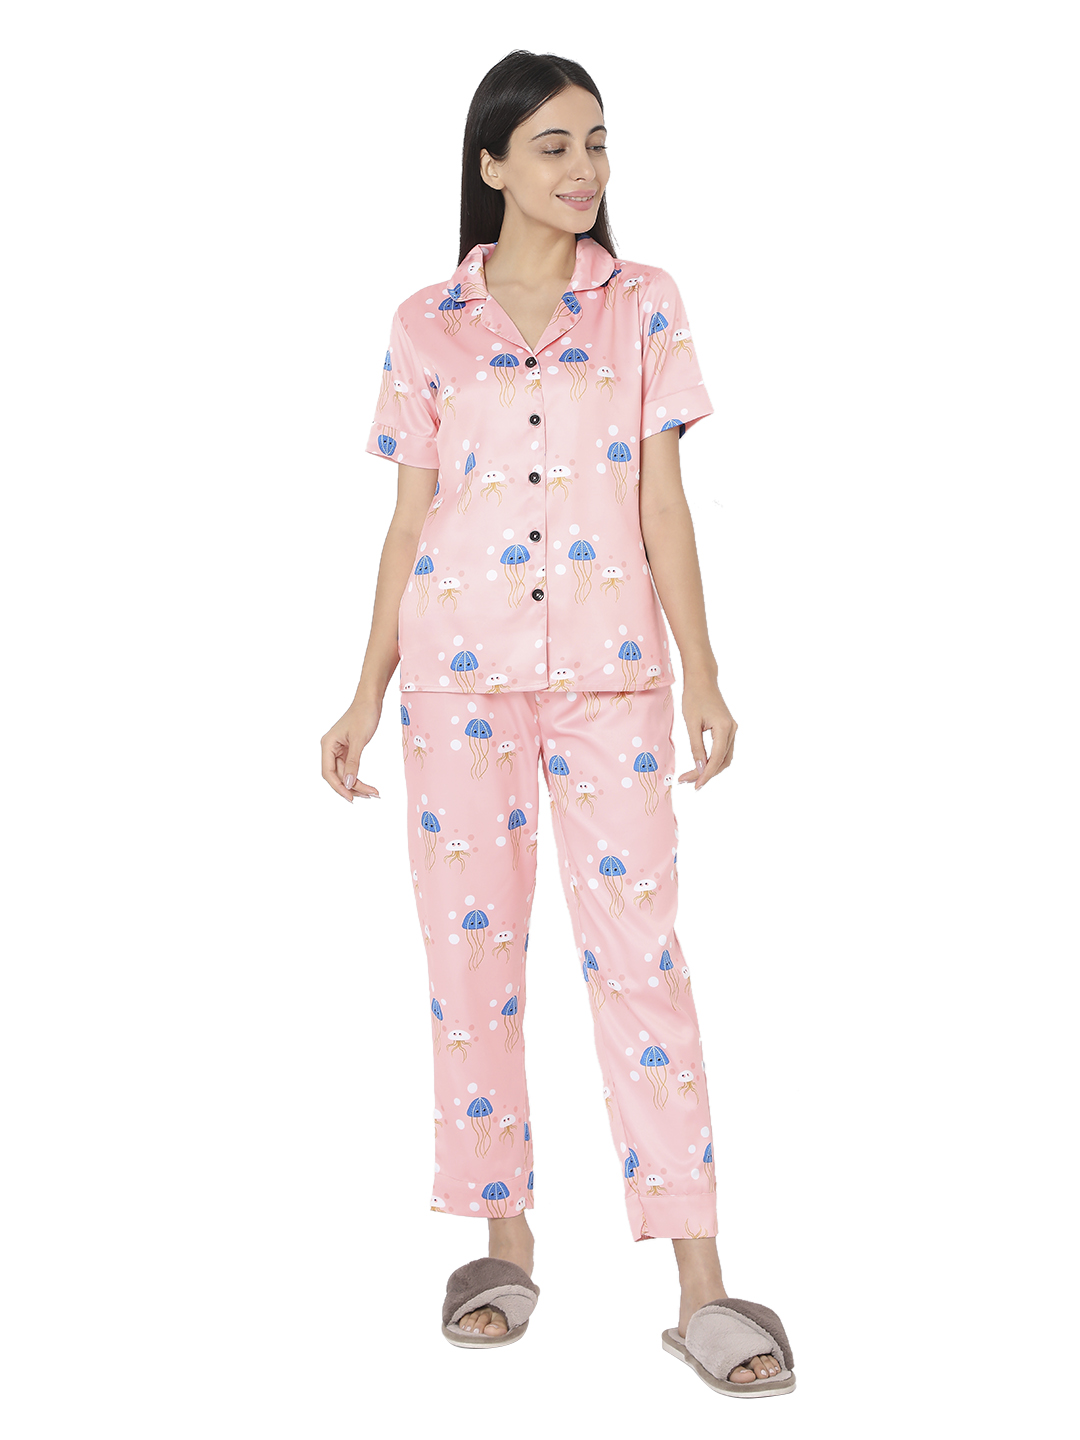 Smarty Pants   Smarty Pants women's silk satin pastel pink color jelly fish print night suit.